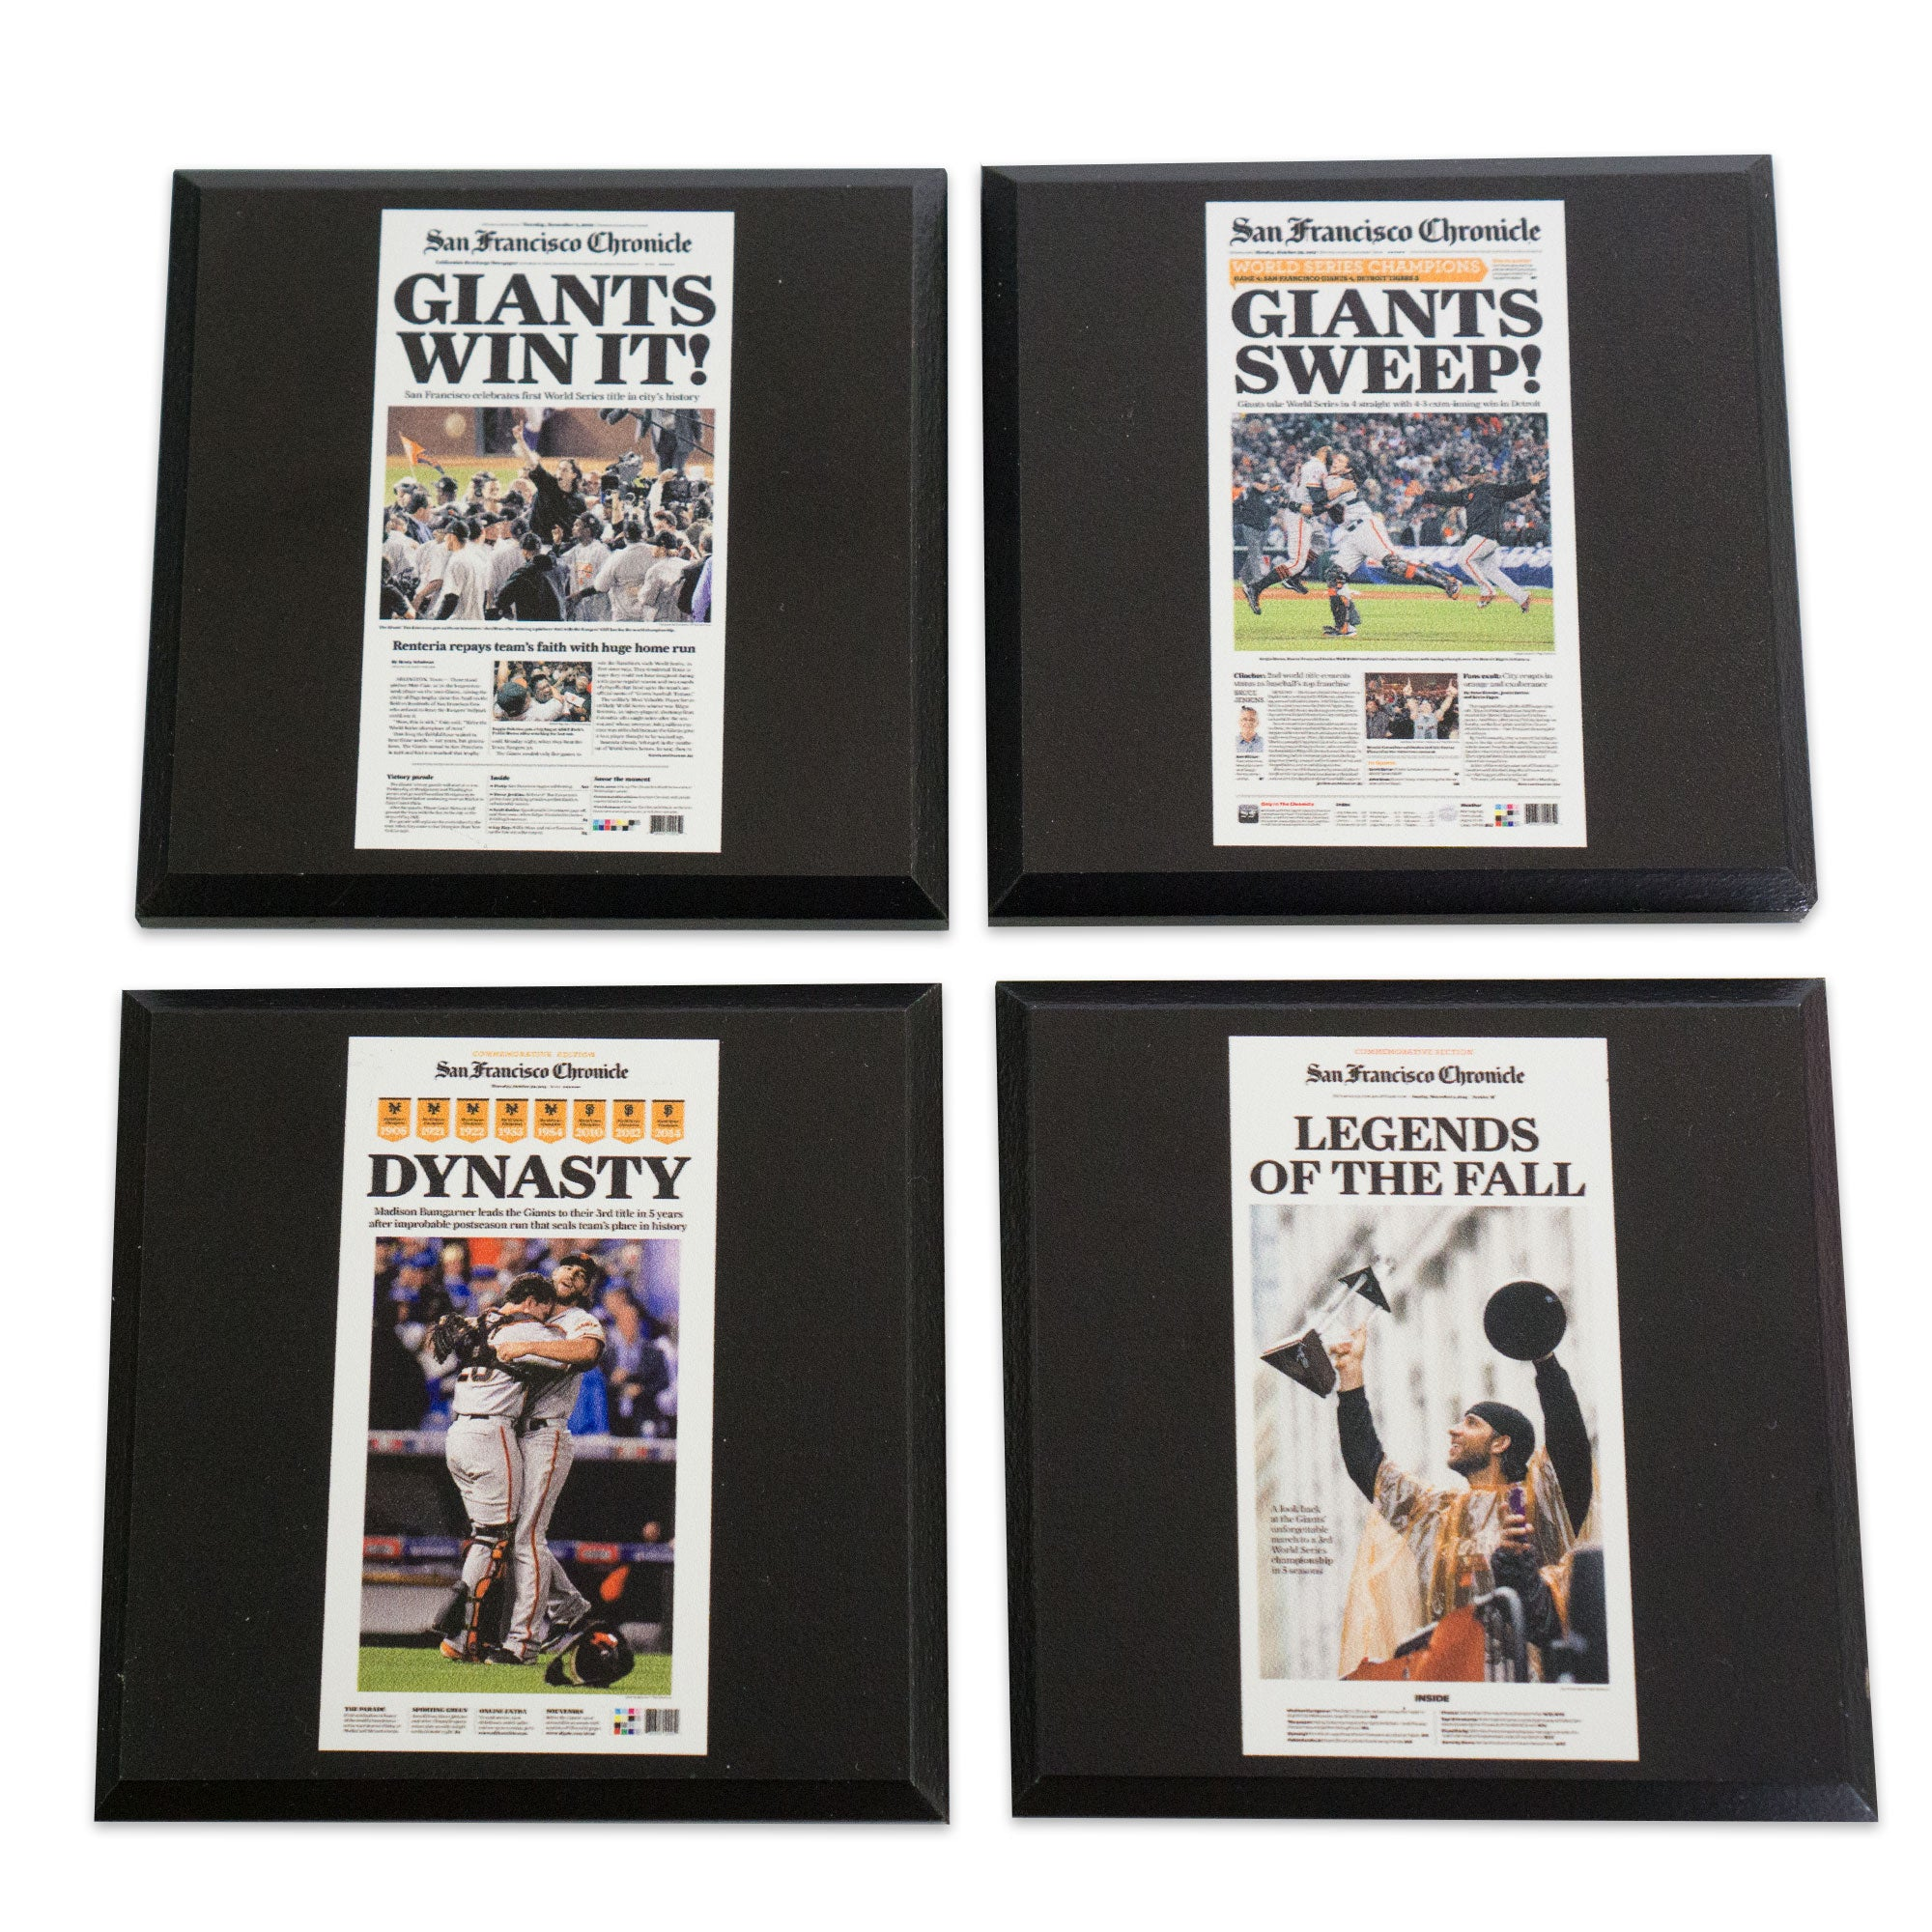 huge discount 0a731 c1676 SF Giants - San Francisco Chronicle online store